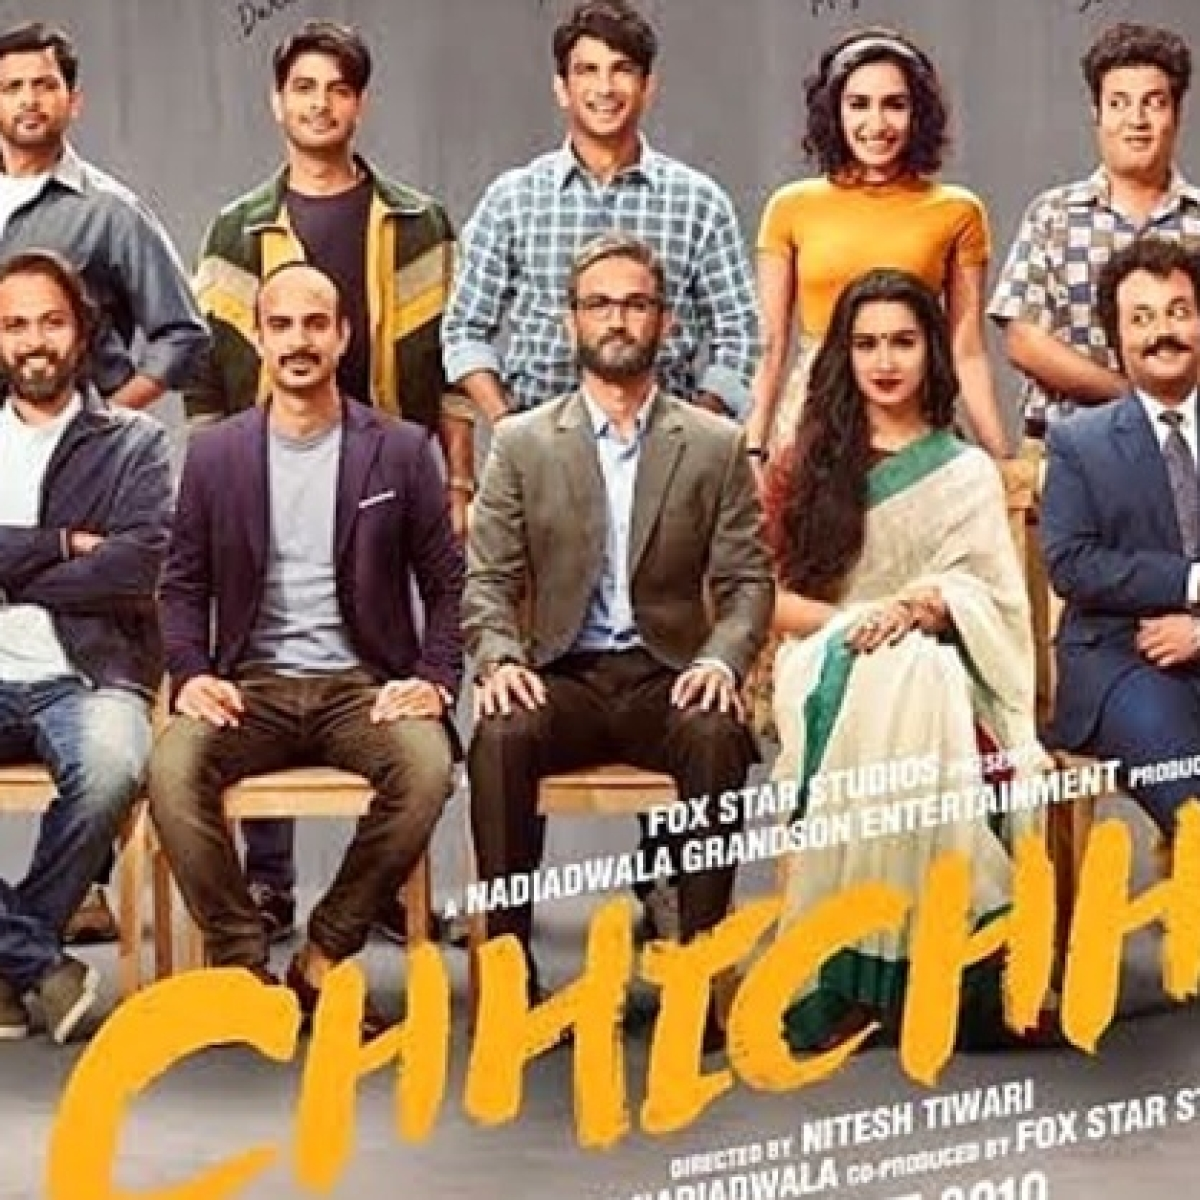 Aamir Khan, Akshay Kumar and more laud Nitesh Tiwari's most awaited 'Chhichhore' trailer